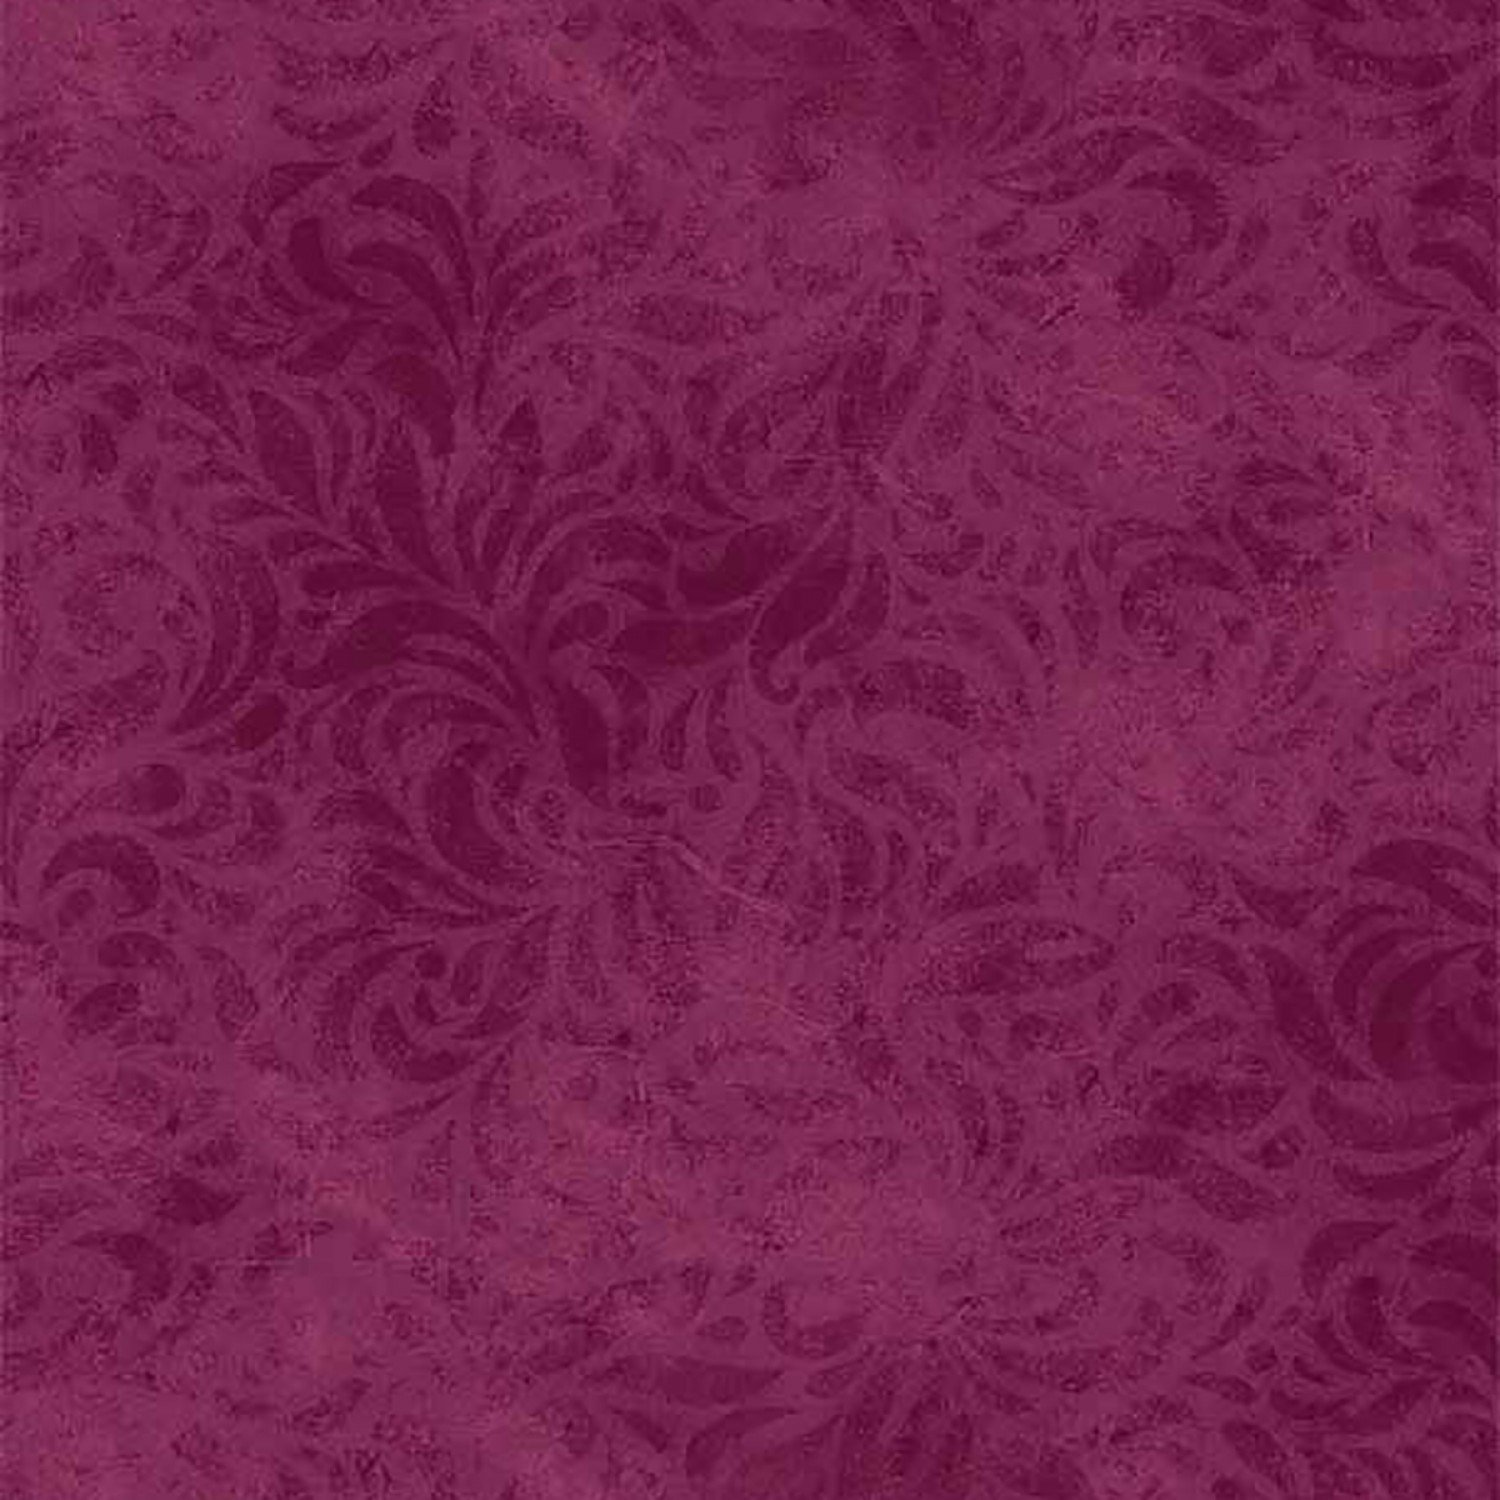 Bella Suede Wine Tonal 108 wide